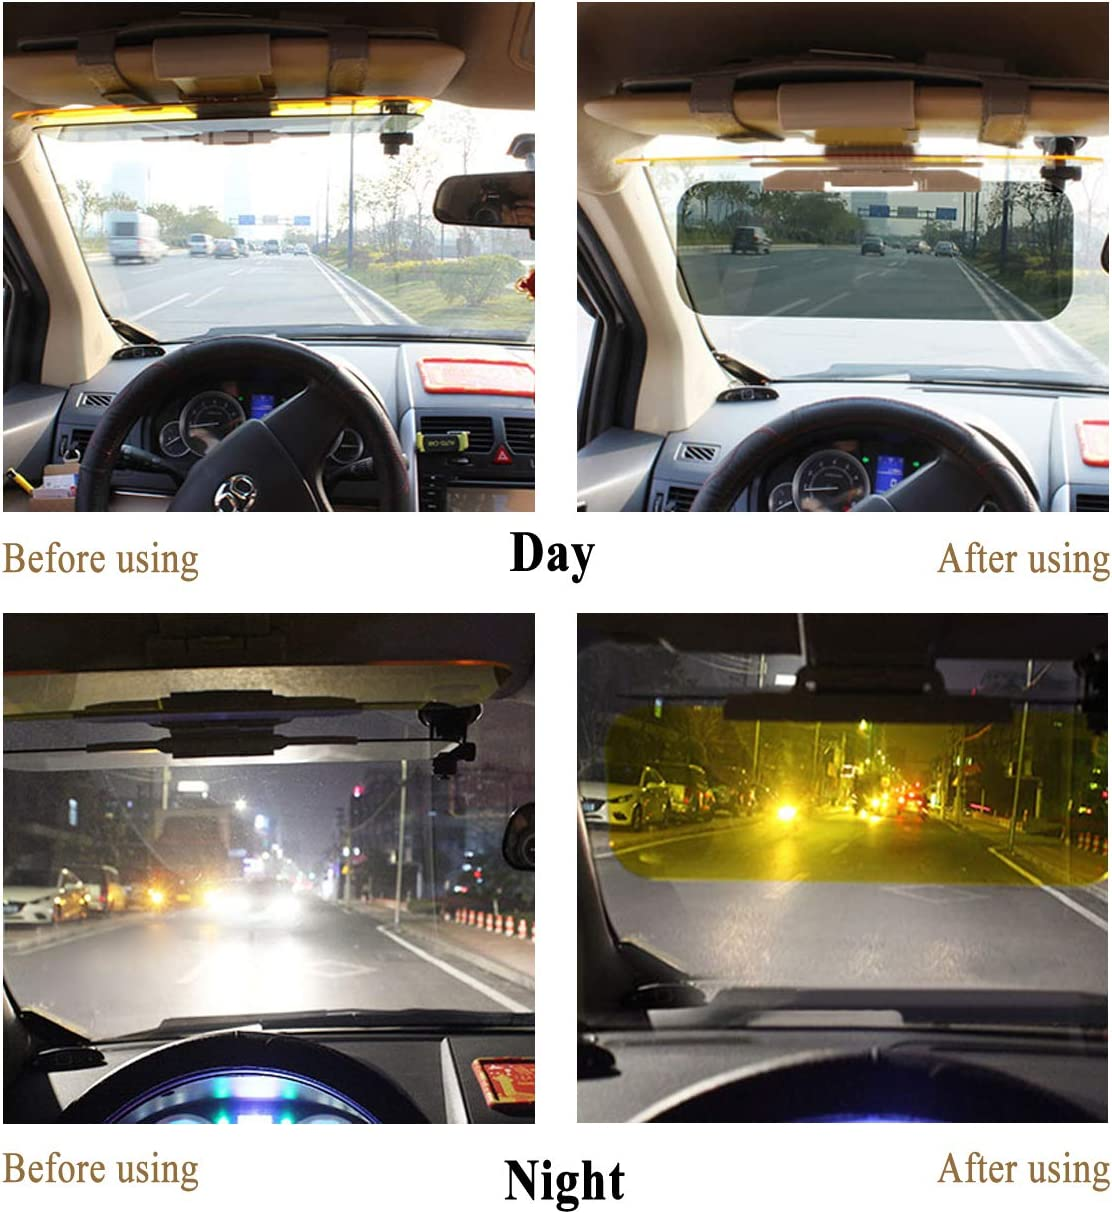 ACBungji Car Sun Visor Extender,2 in 1 Anti Glare Sun Blocker Protection for Car Windshield-2 Pack Large for Truck SUV